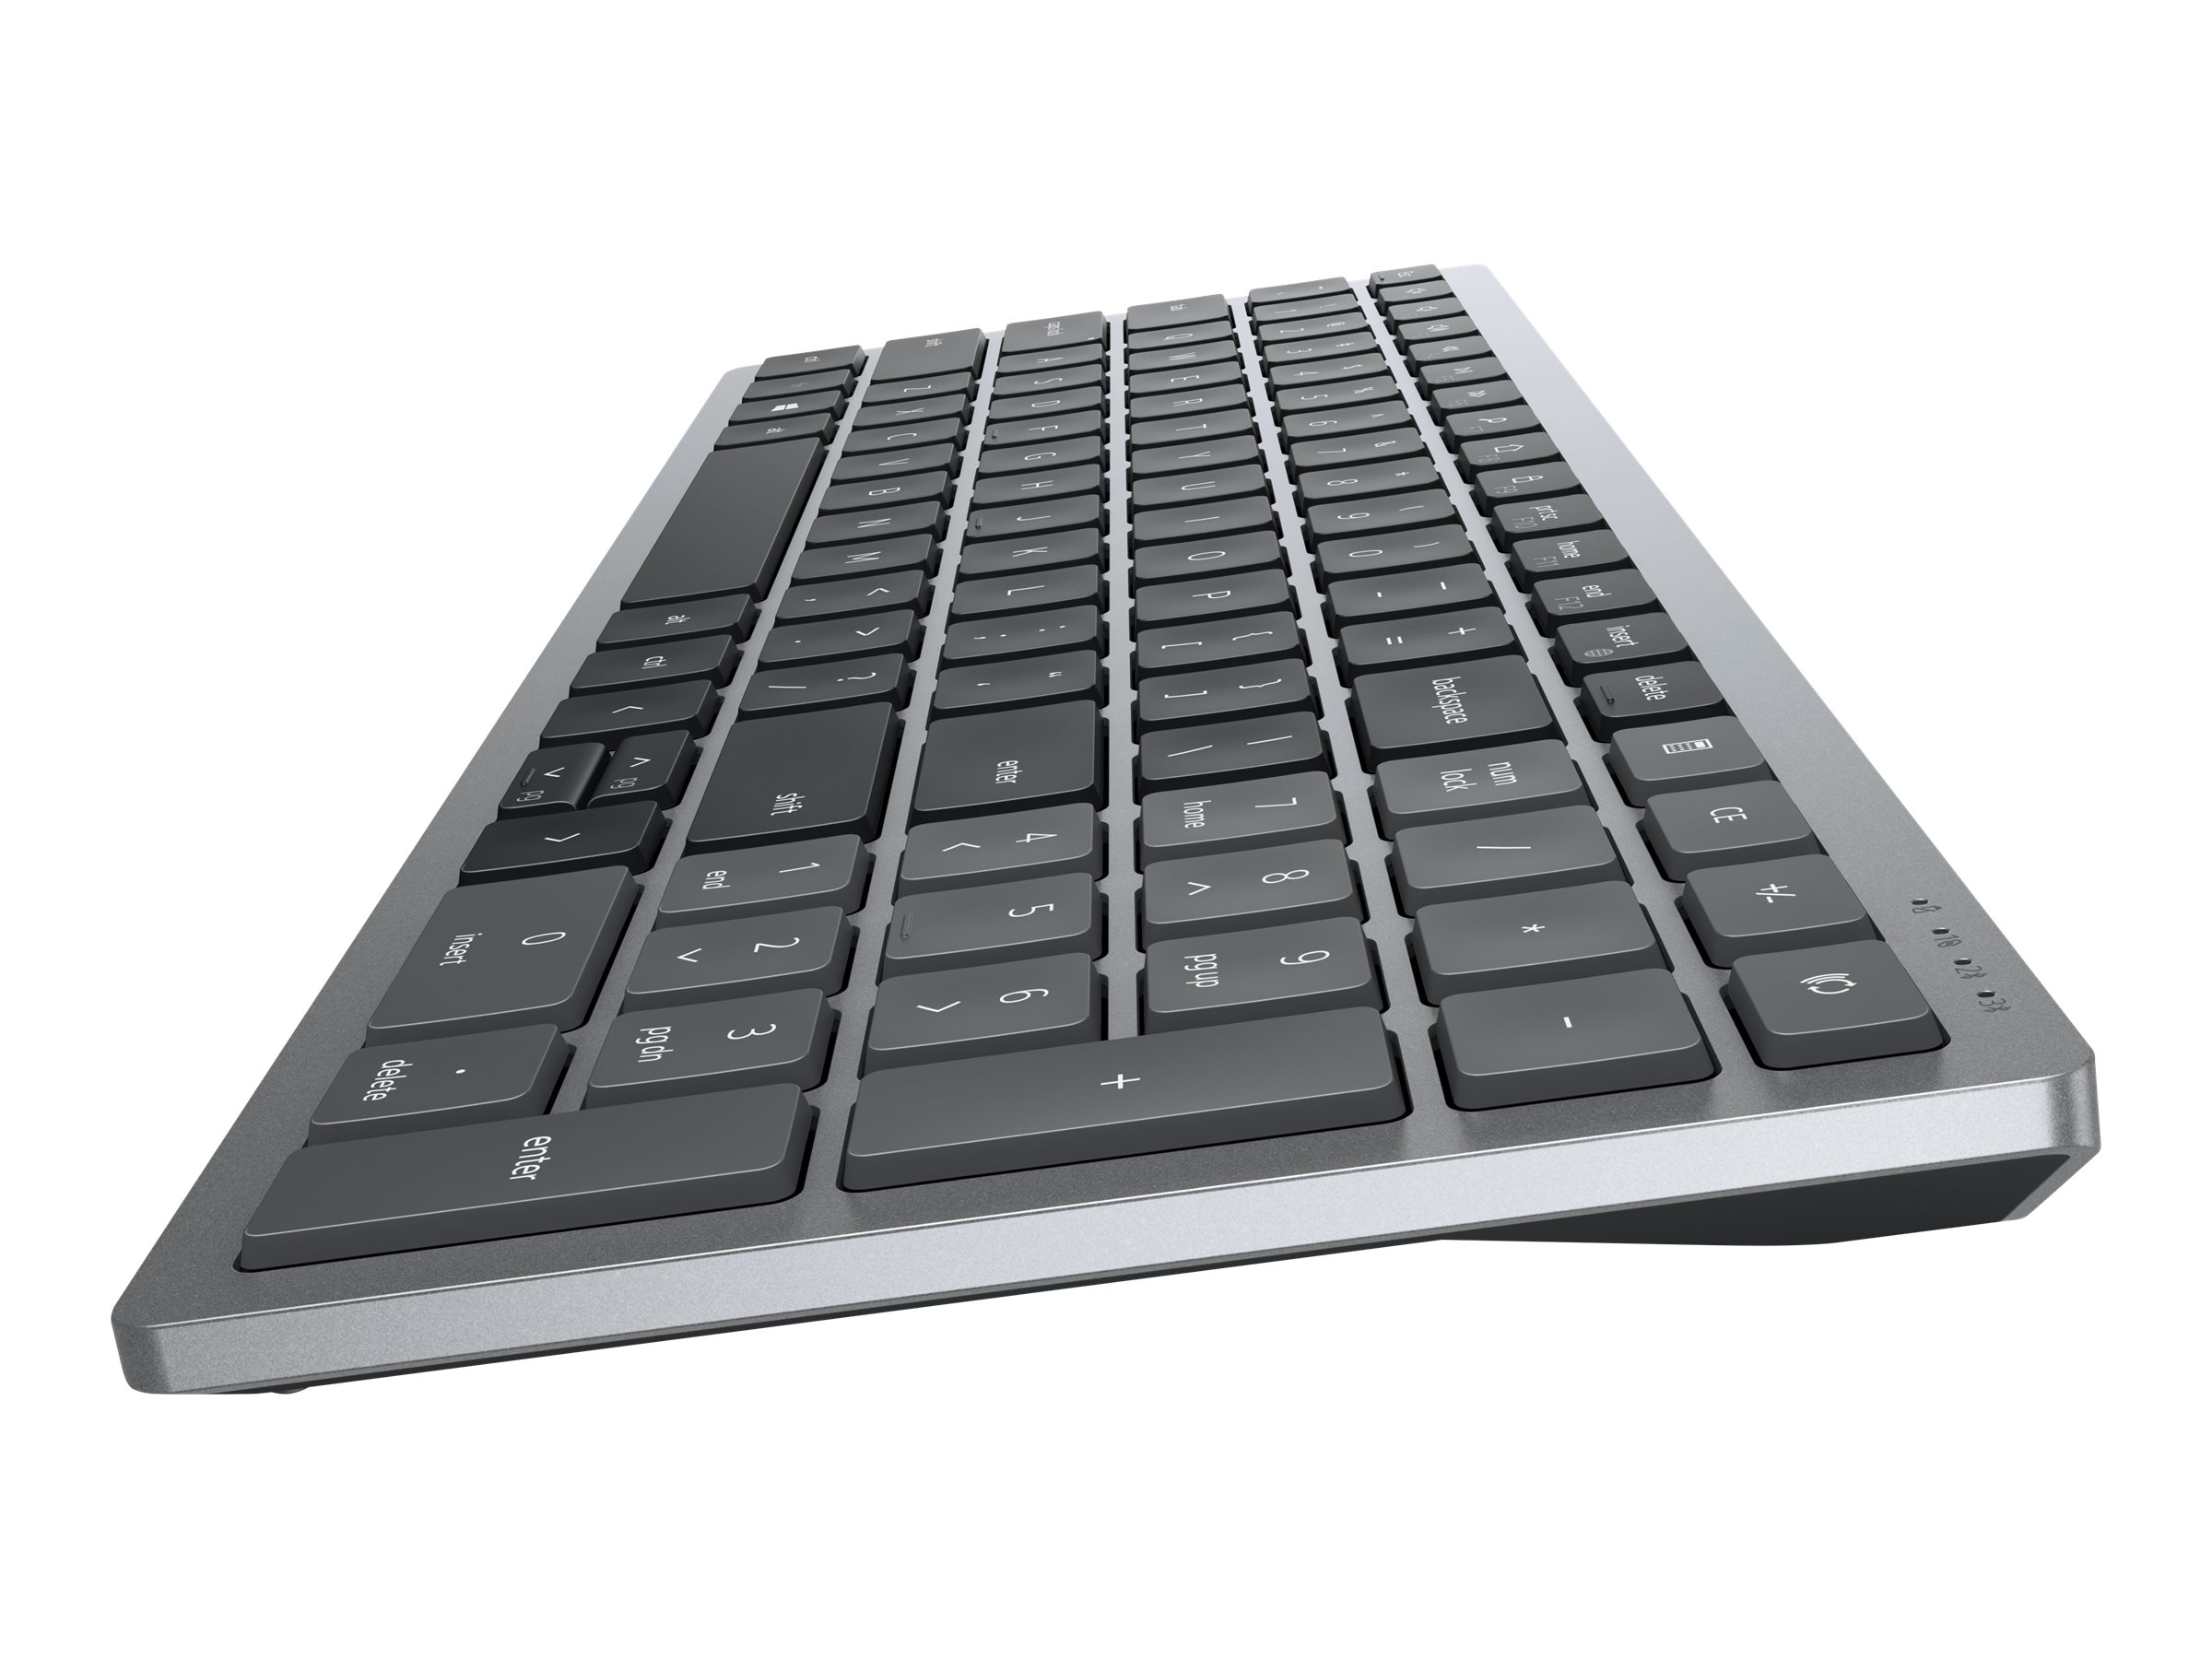 Dell Multi-Device Wireless Keyboard and Mouse Combo KM7120W - keyboard and mouse set